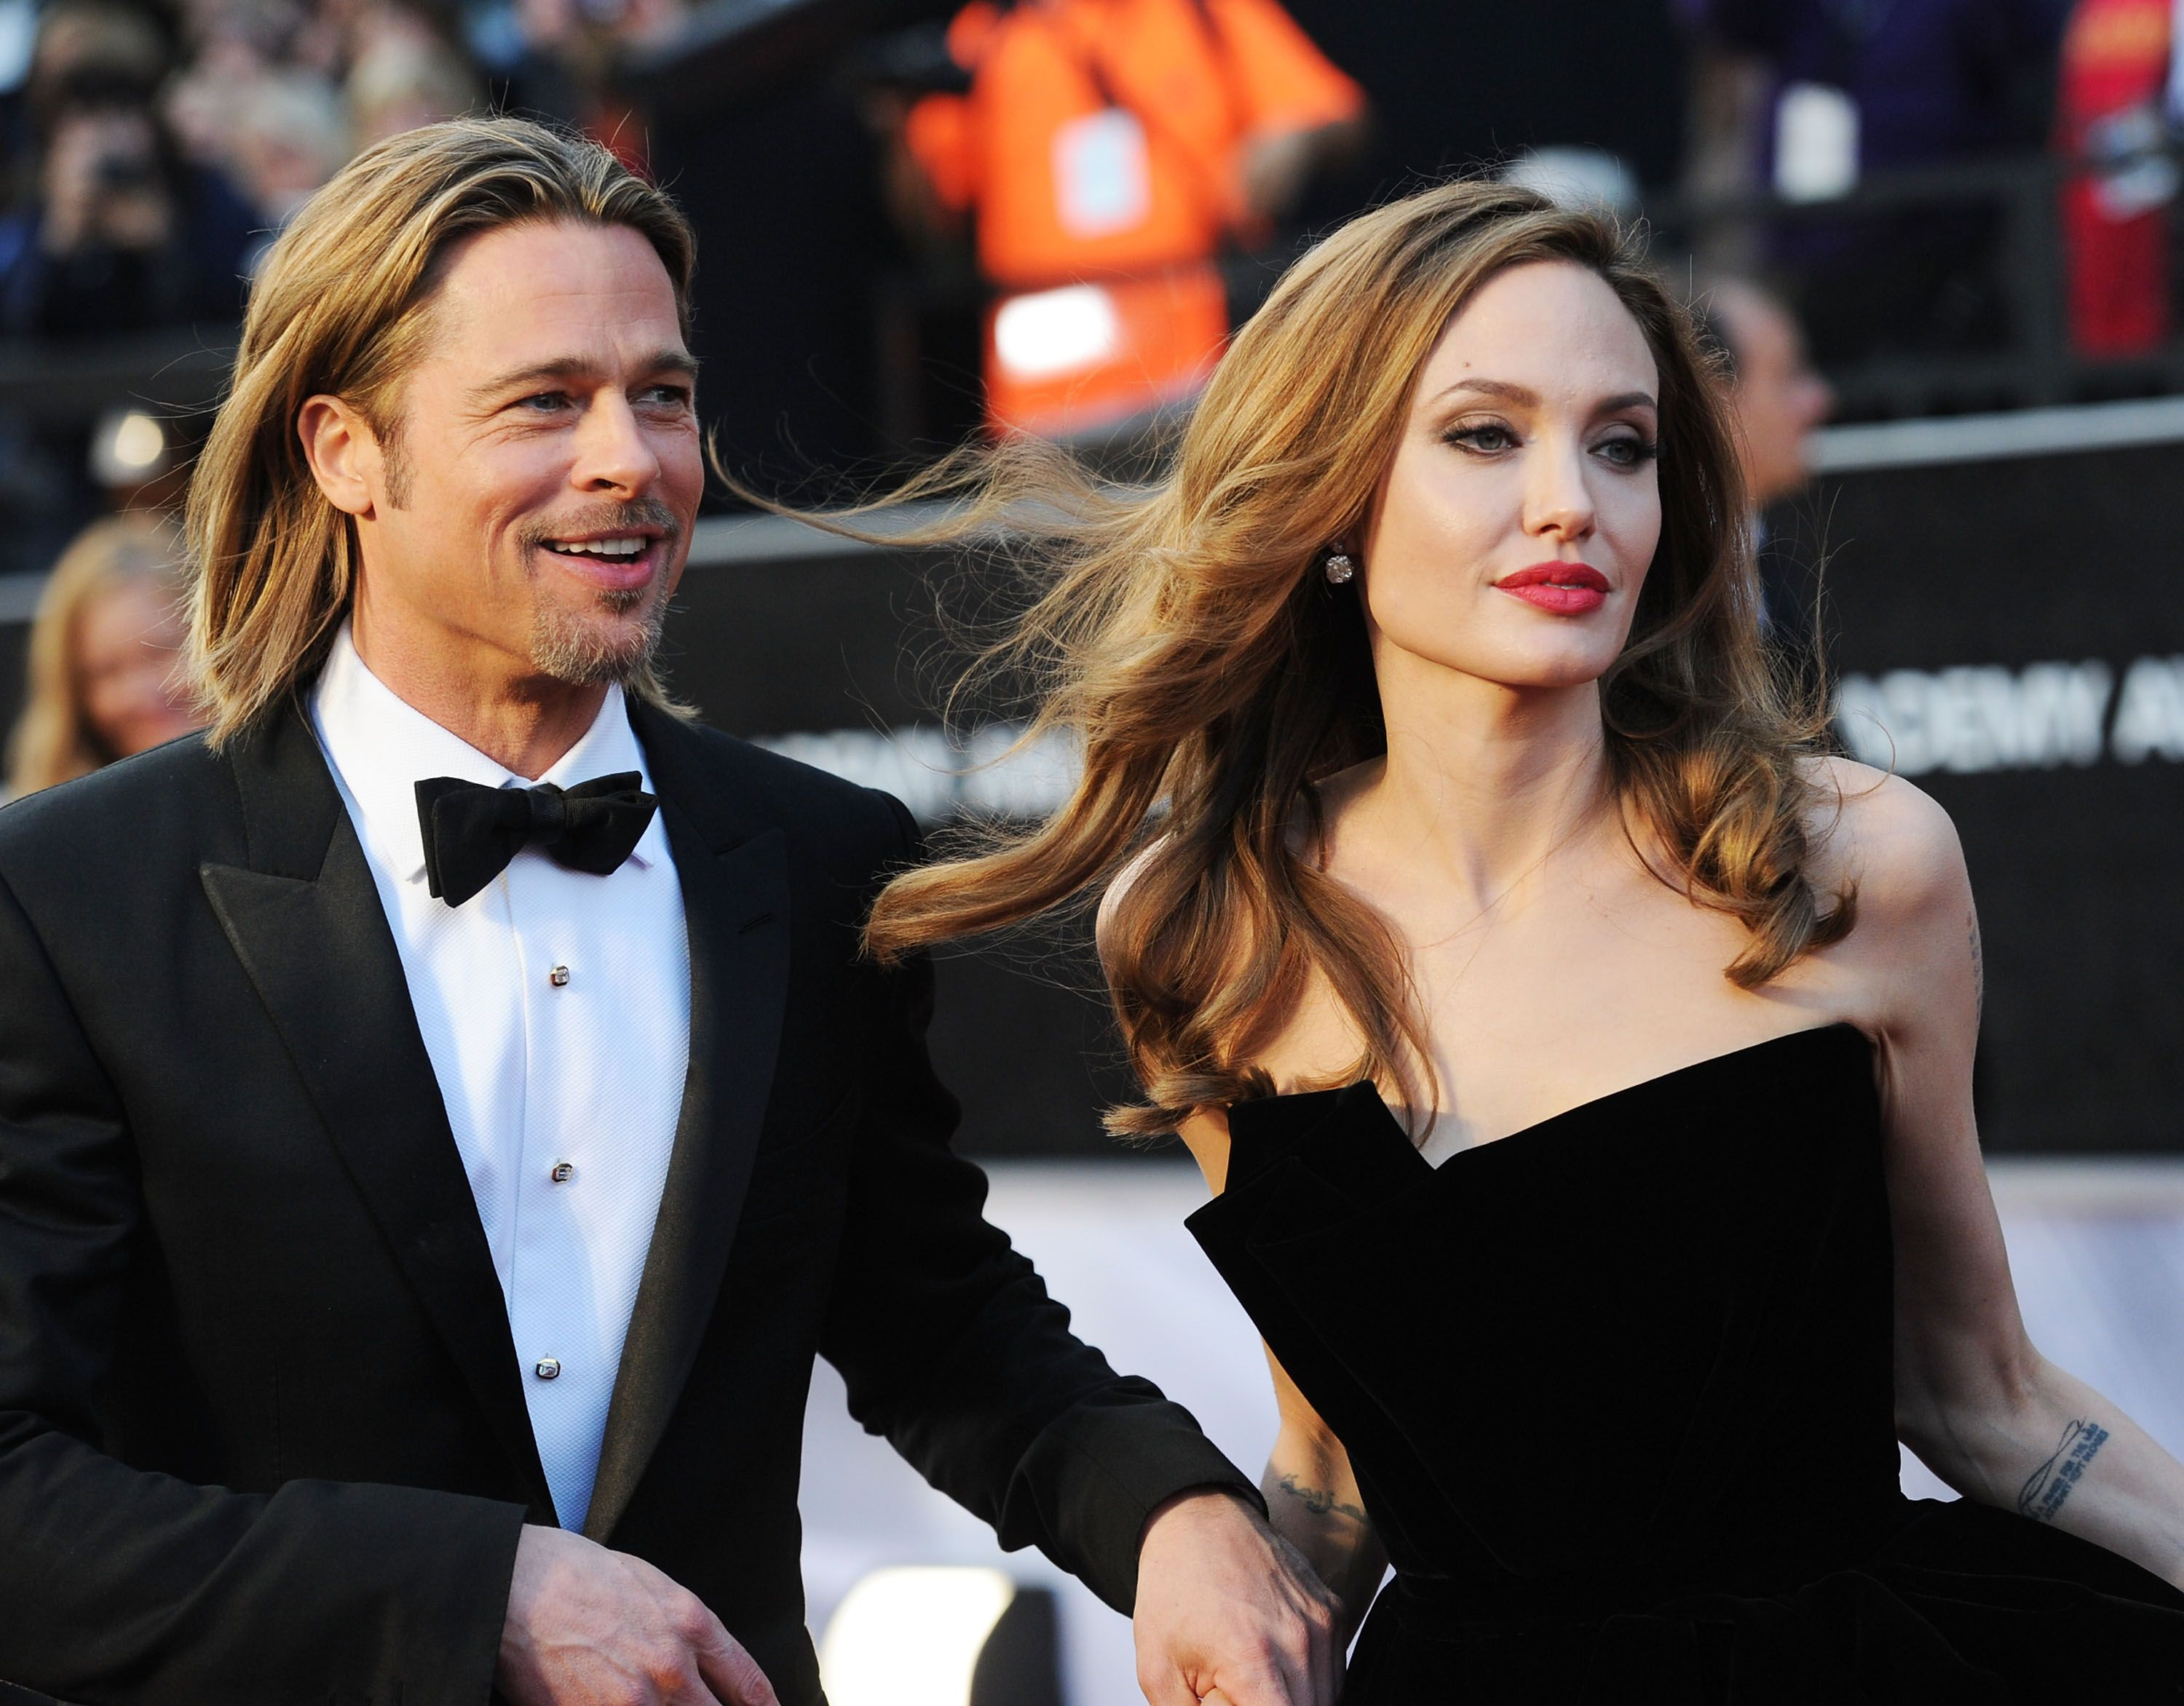 Angelina jolie to drop in africa brad pitt cheesed off at paris new picture